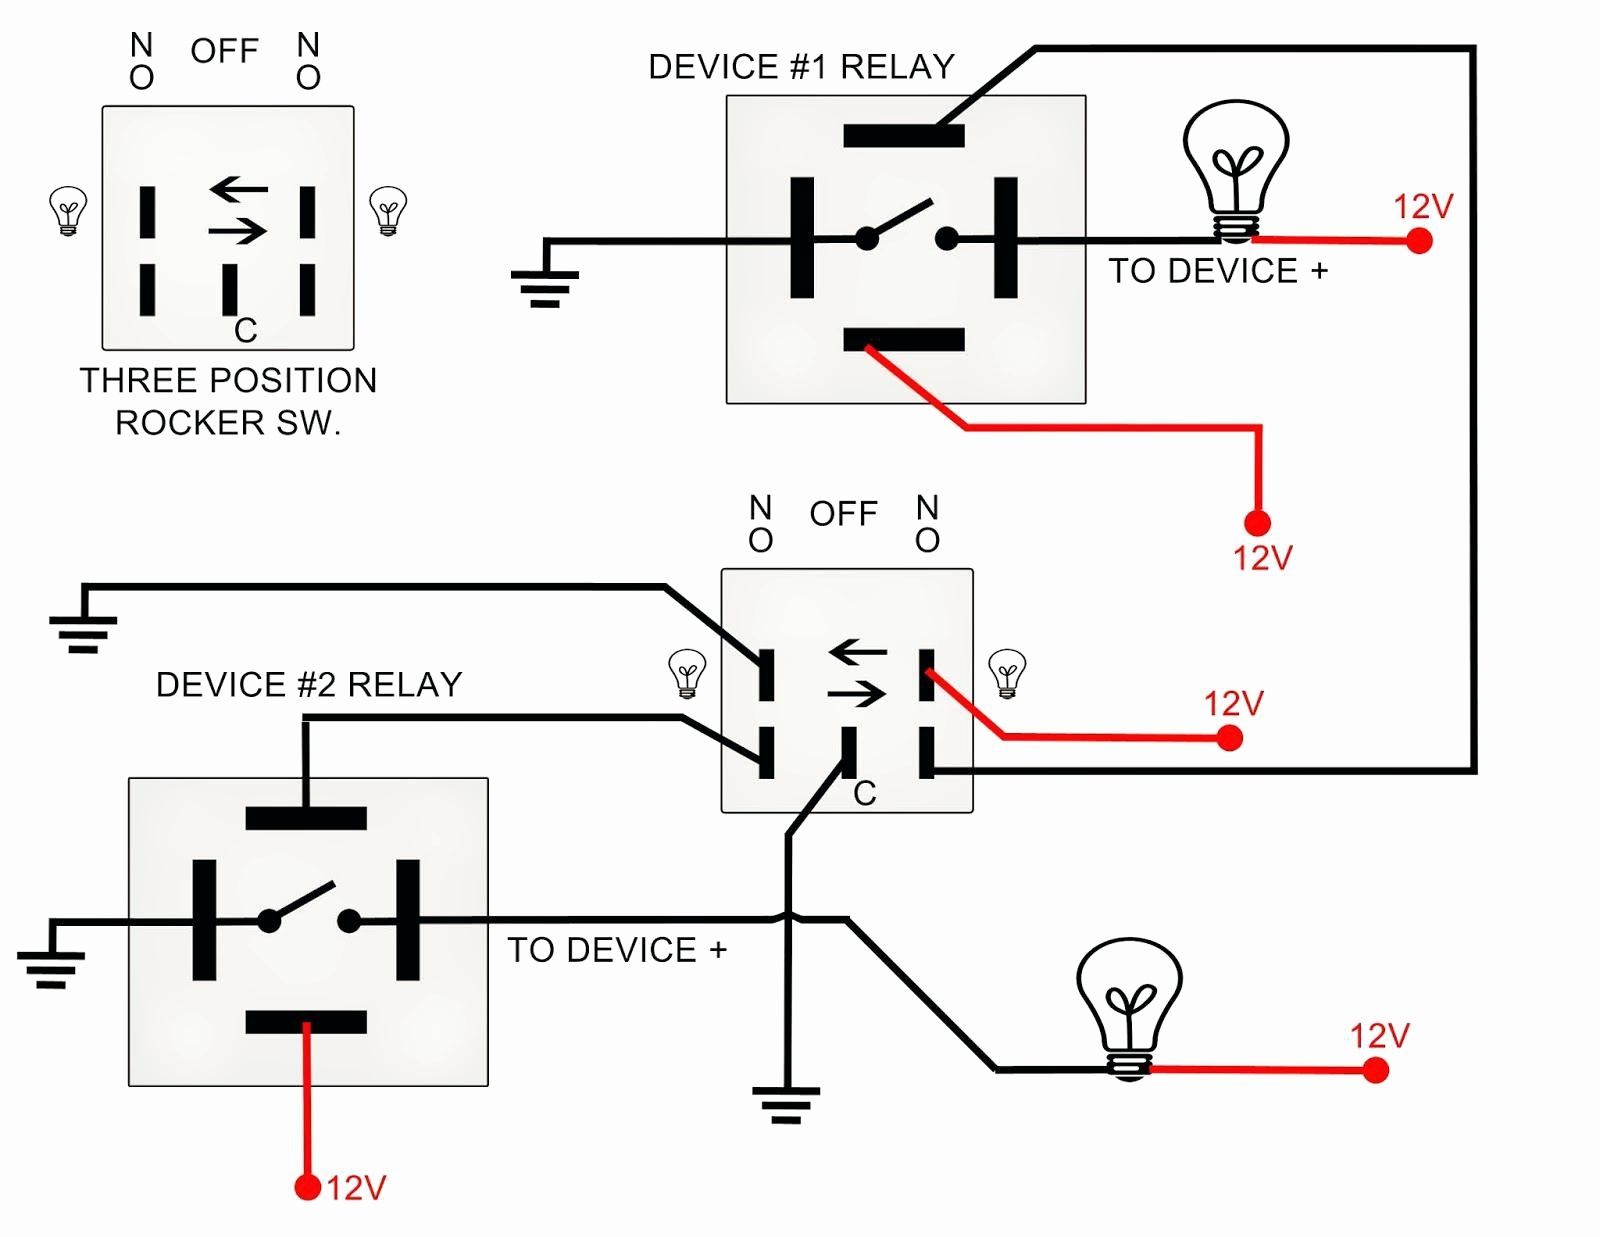 Sample Image Ford Starter Selenoid Wiring Diagram Solenoid Switch Wiring Diagram For X 9000 18 16 Artatec Automobile Ford Ignition System Wi Diagram Ford Relay